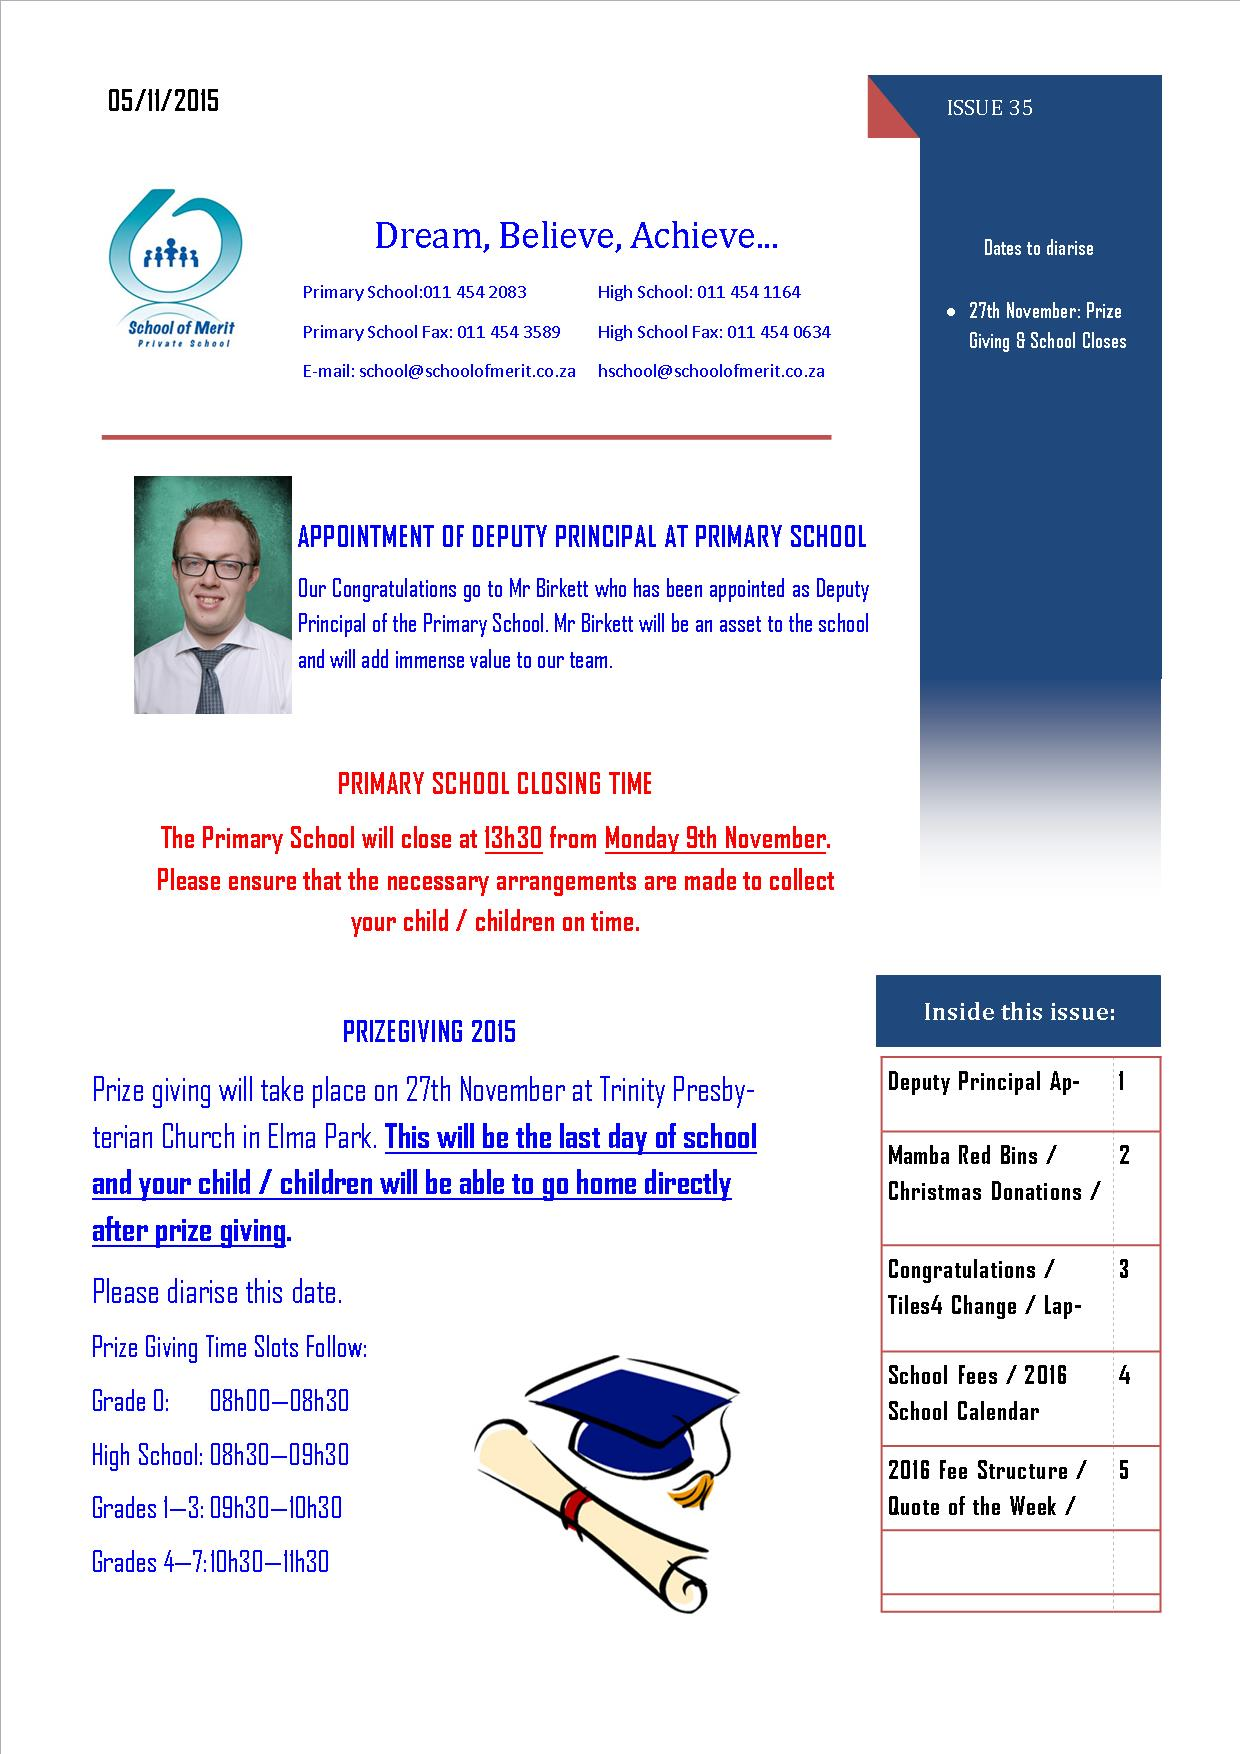 Newsletter 35 Page 1